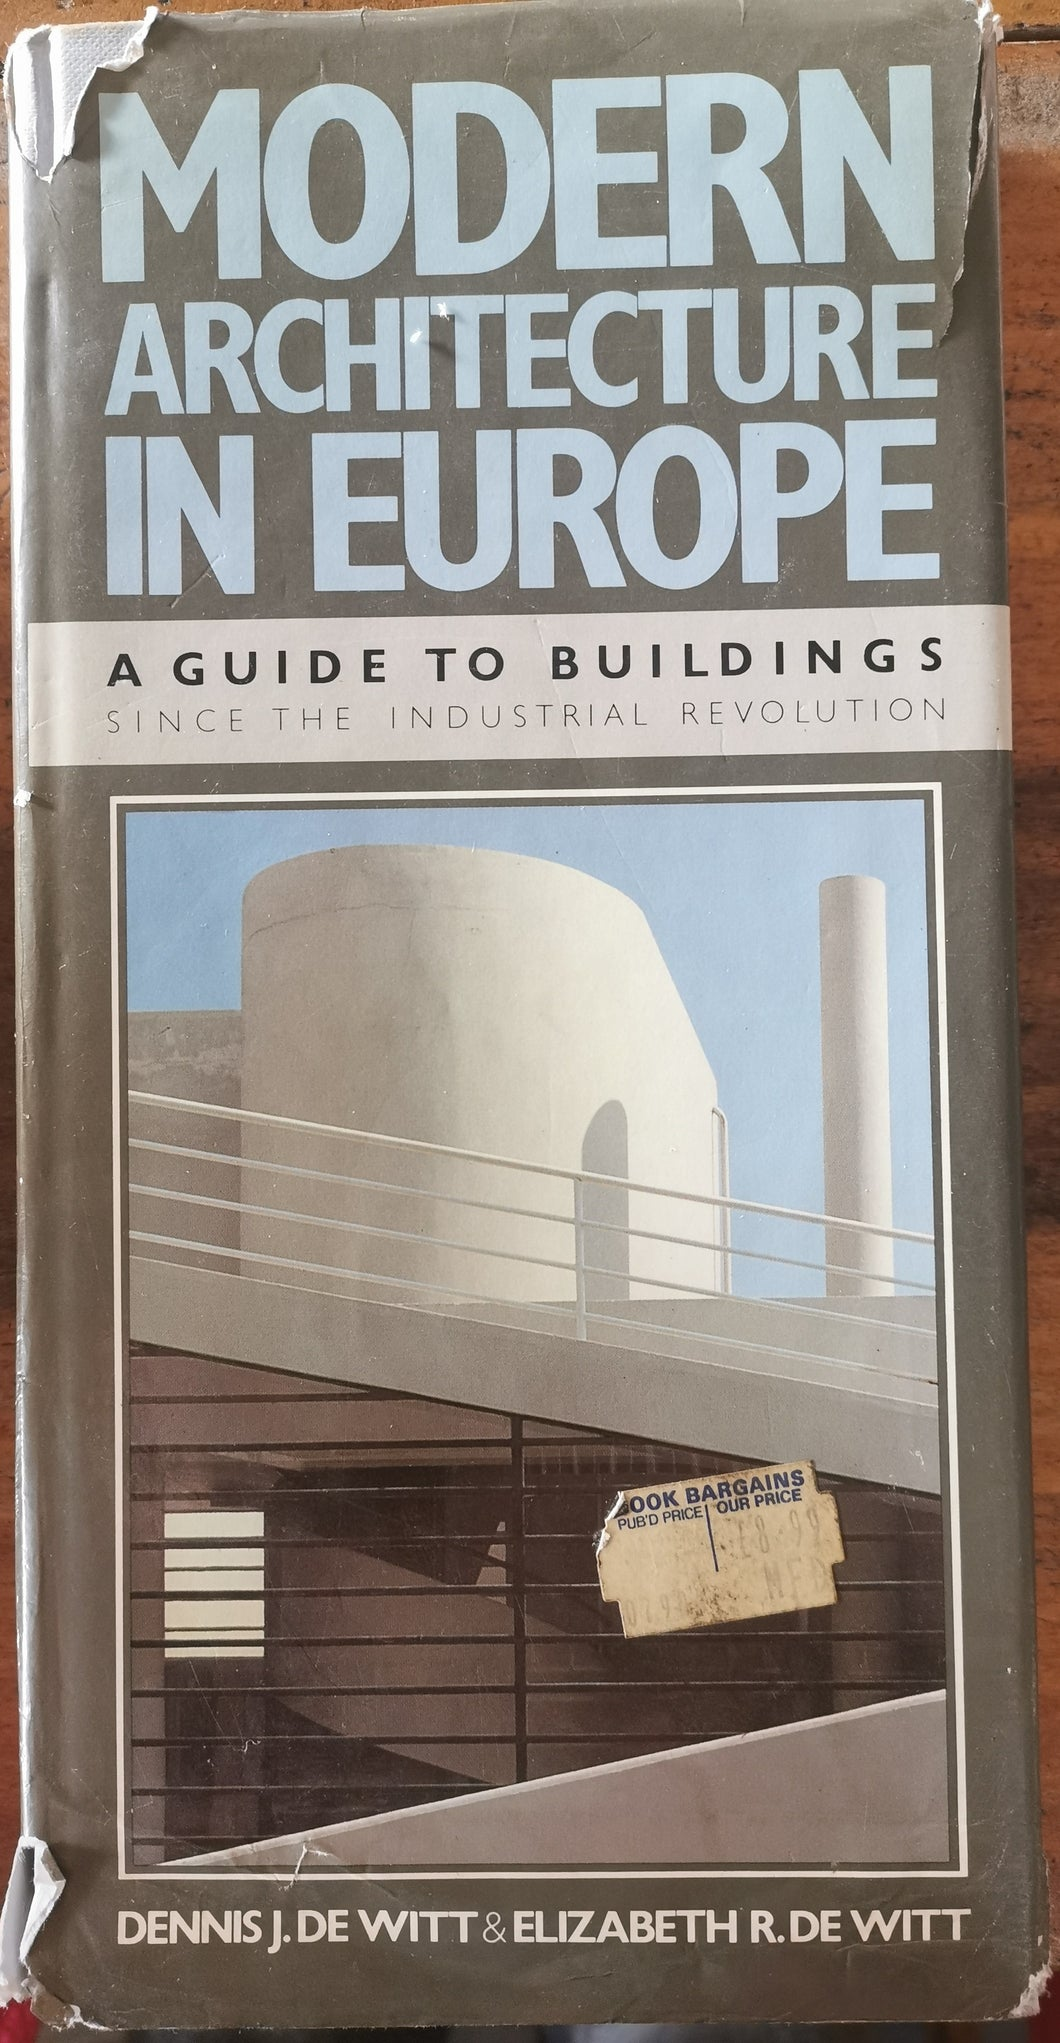 Modern Architecture in Europe - A Guide to Buildings since the Industrial Revolution